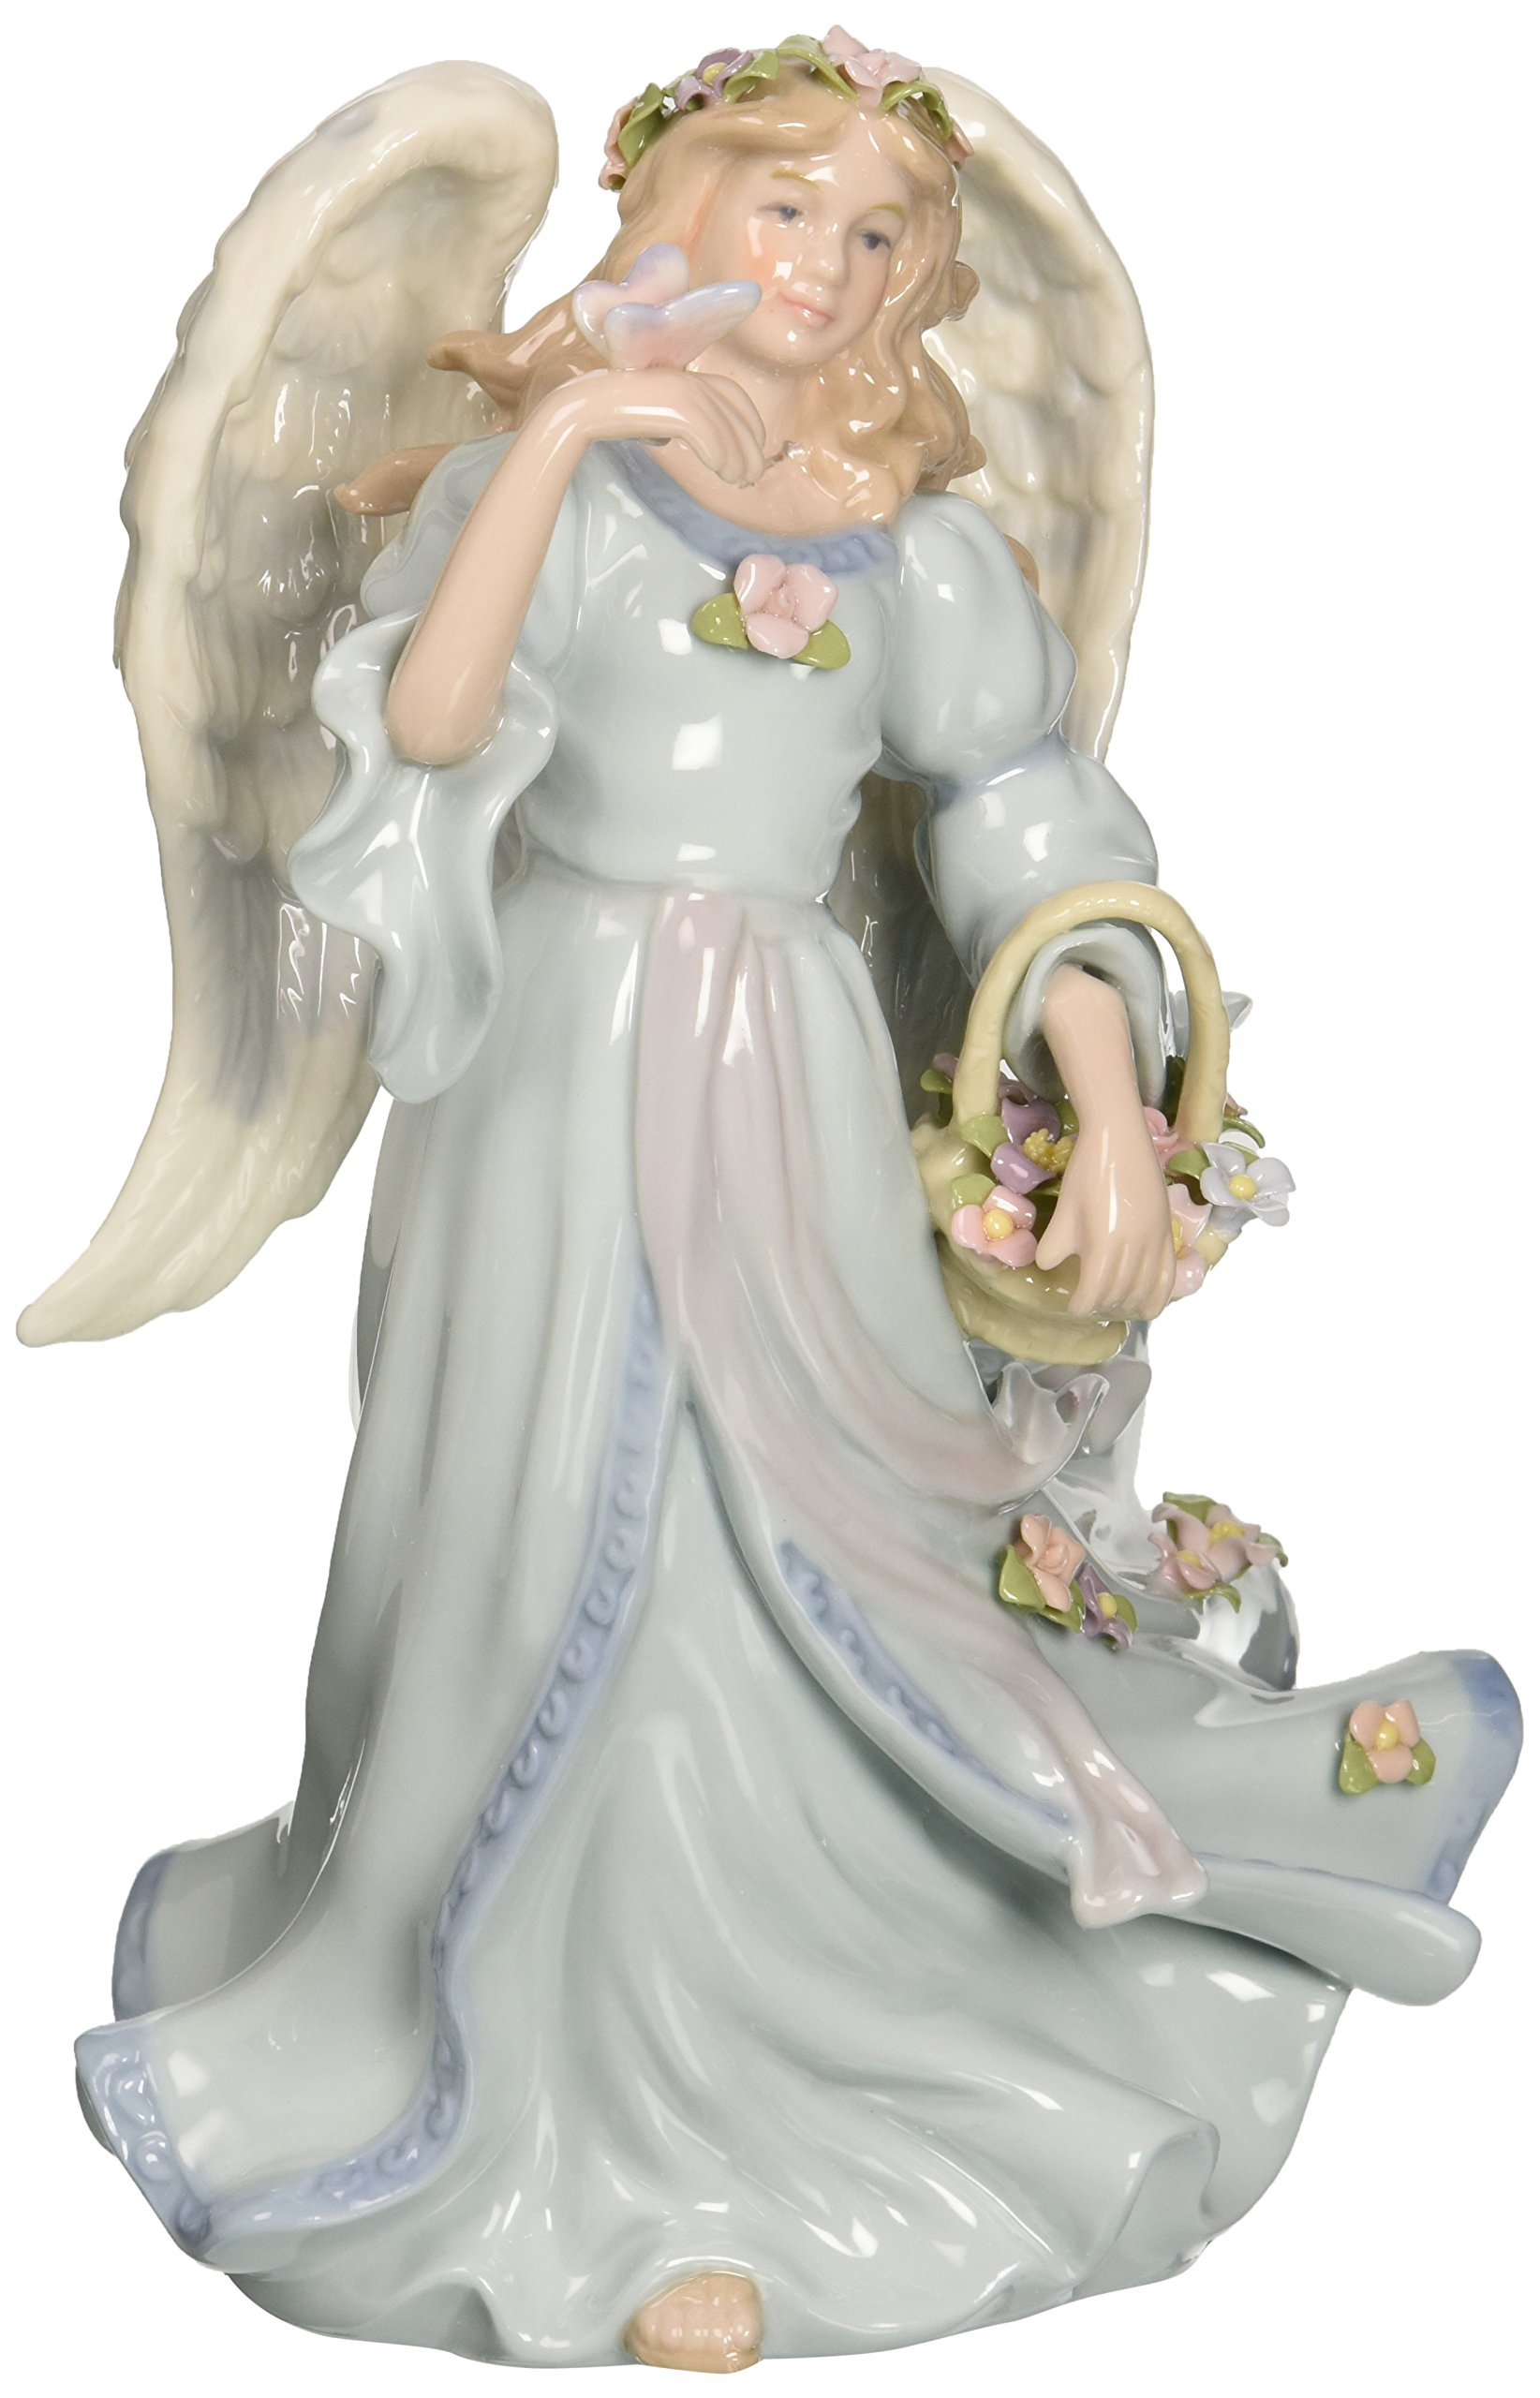 Cosmos 1461 Fine Porcelain Angel with Flower Basket and Butterfly Musical Figurine, 7-7/8-Inch,Blue